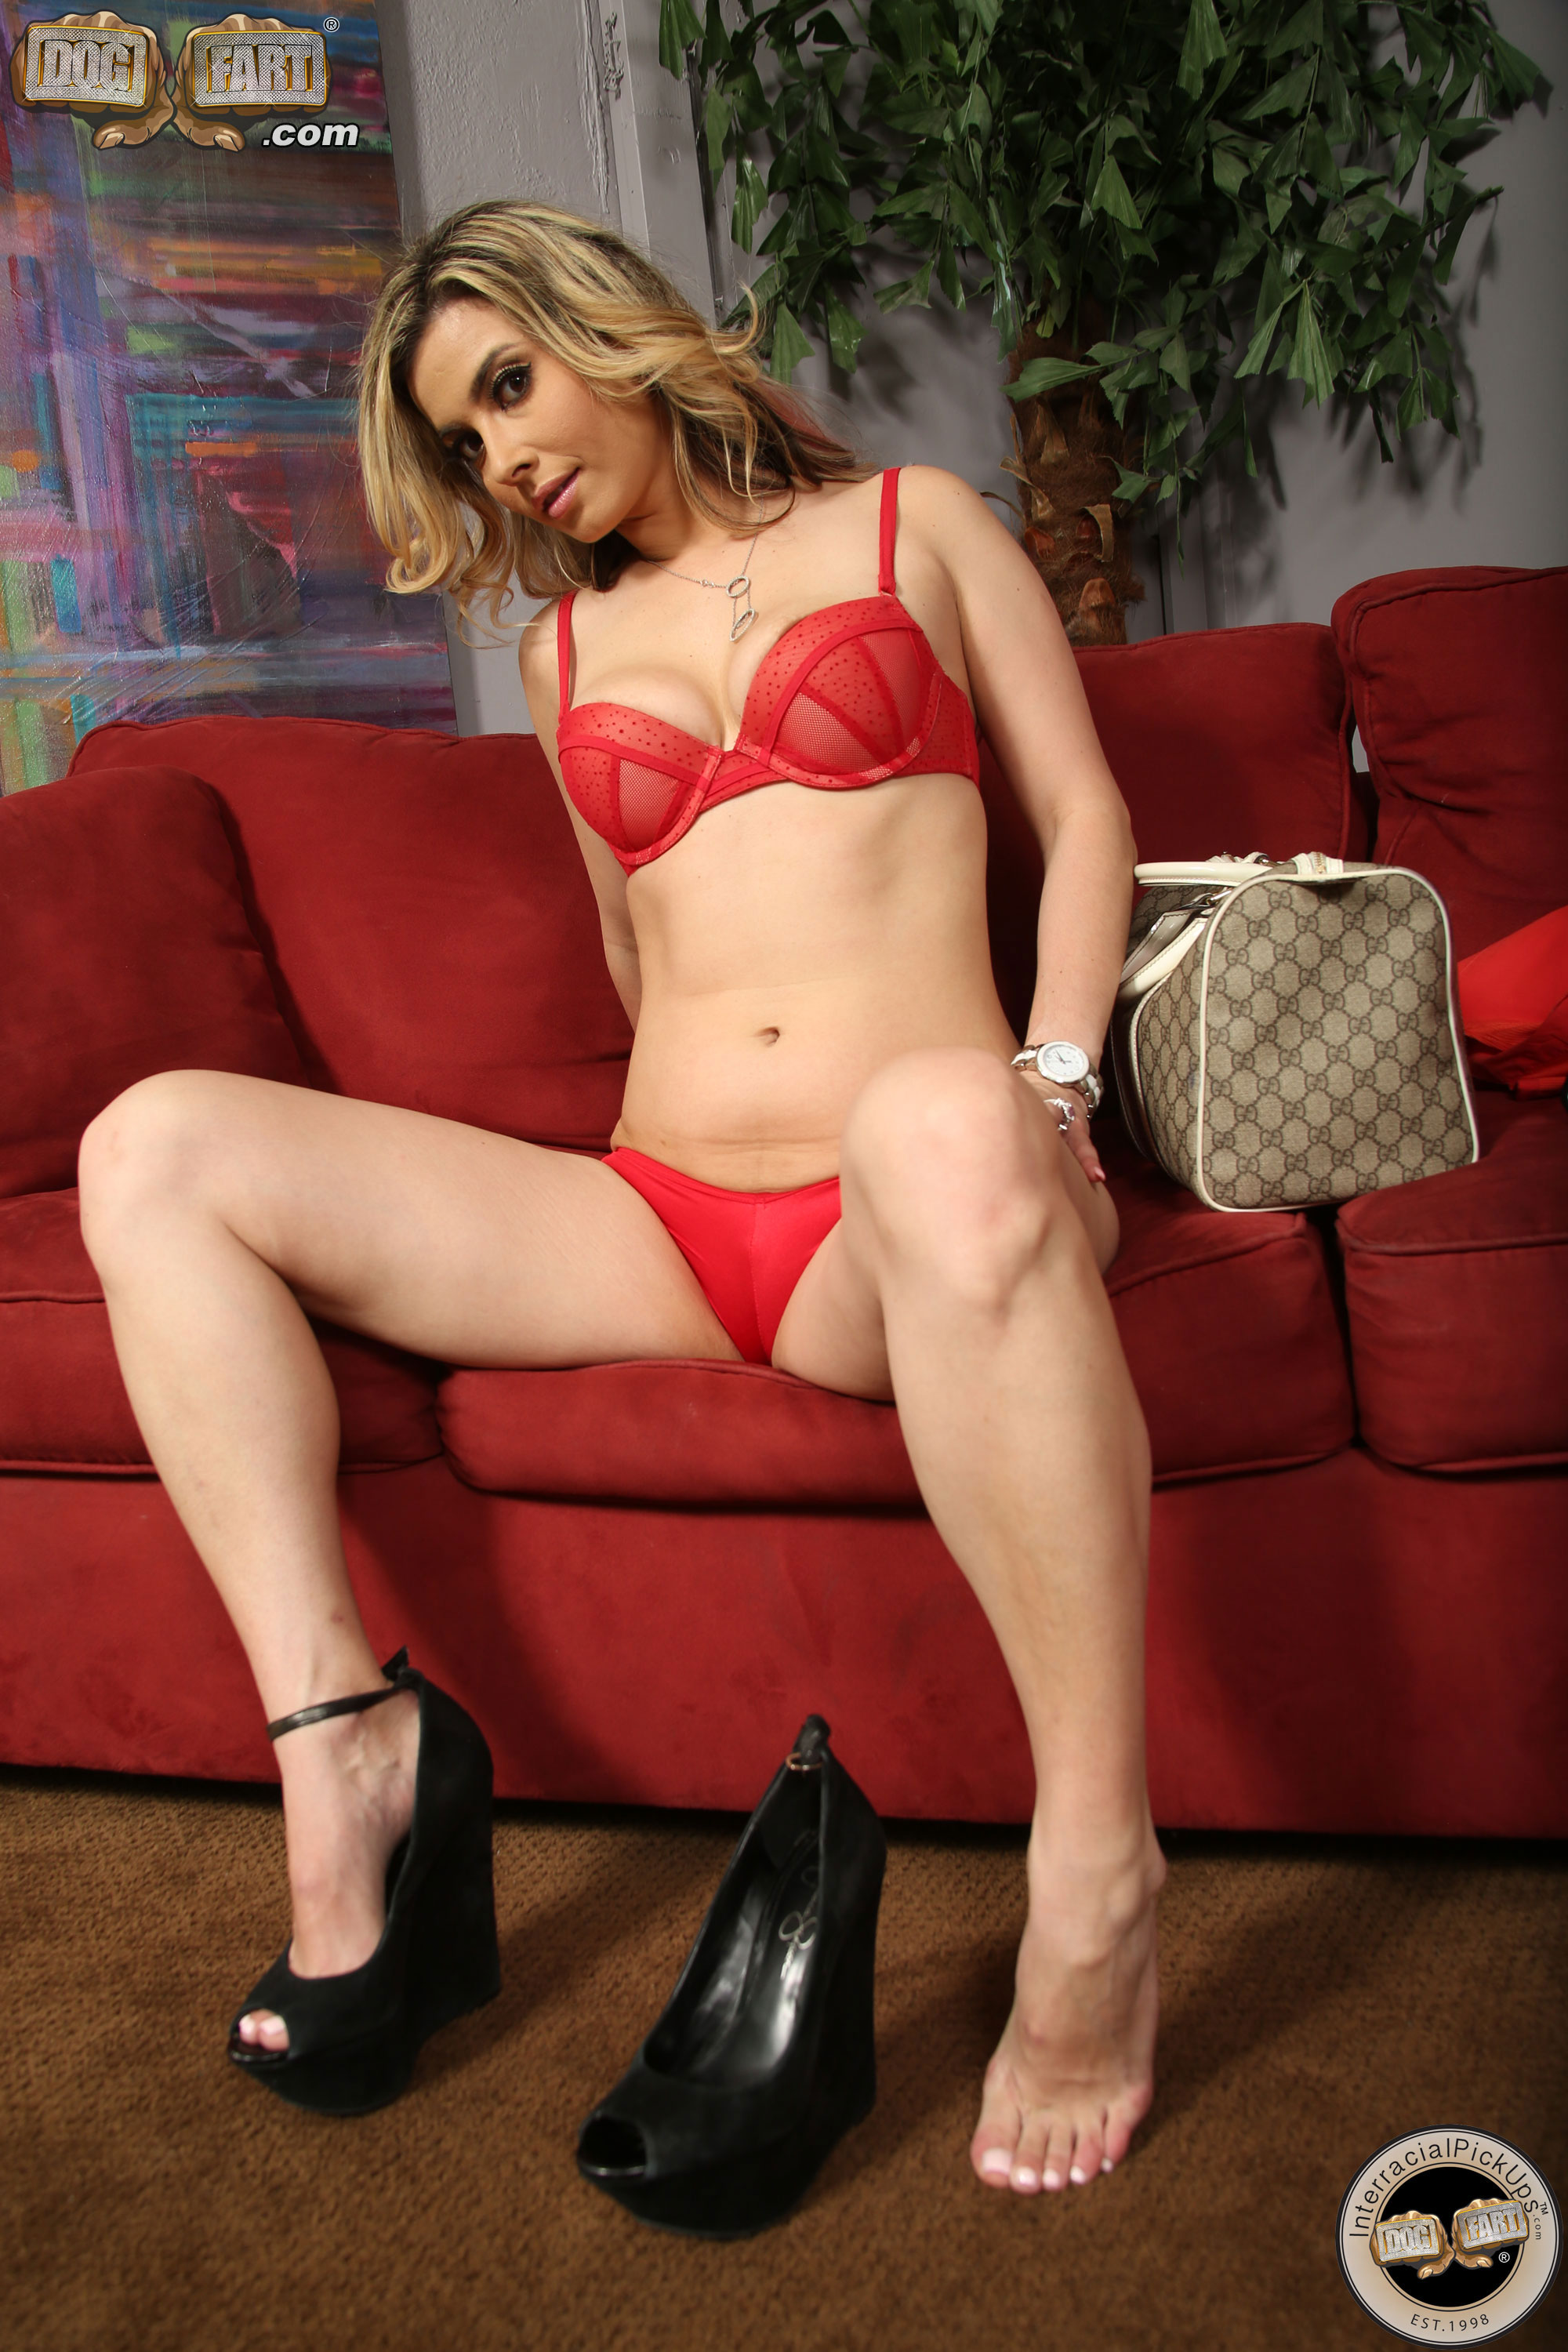 Alana luv is a hot new york milf 3